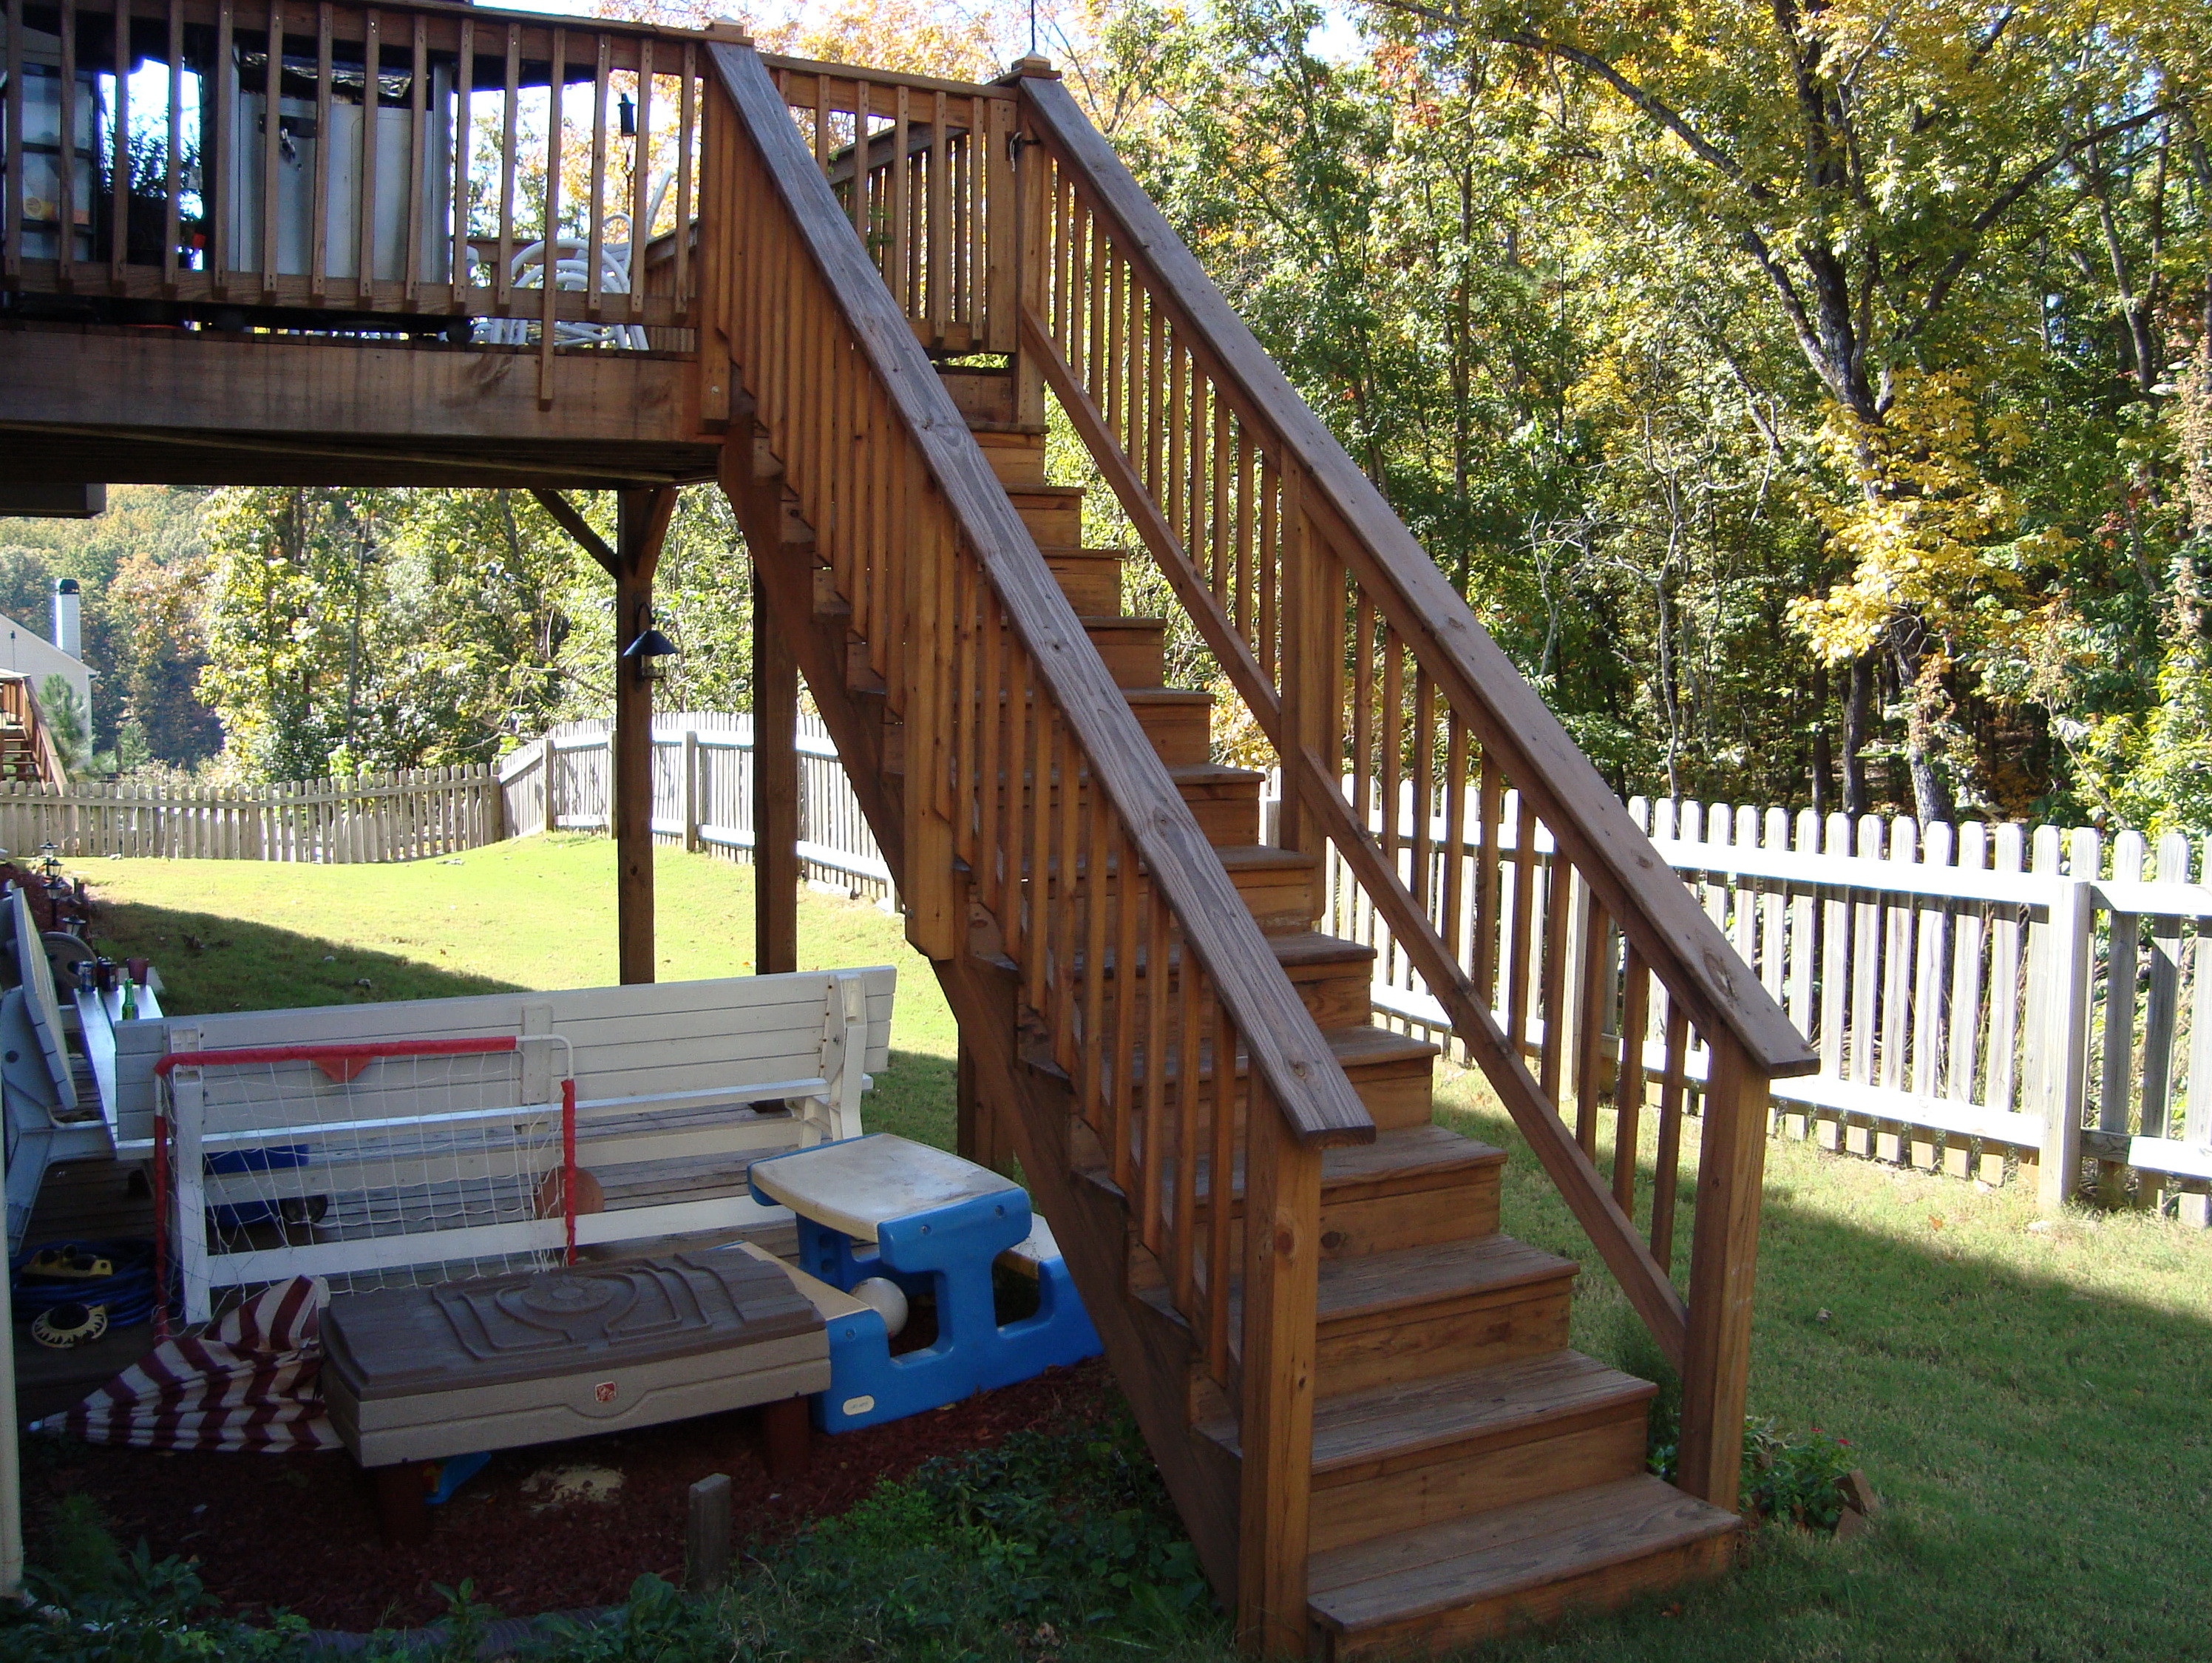 Best ideas about Deck Stair Codes . Save or Pin Deck Stair Handrail Code Now.